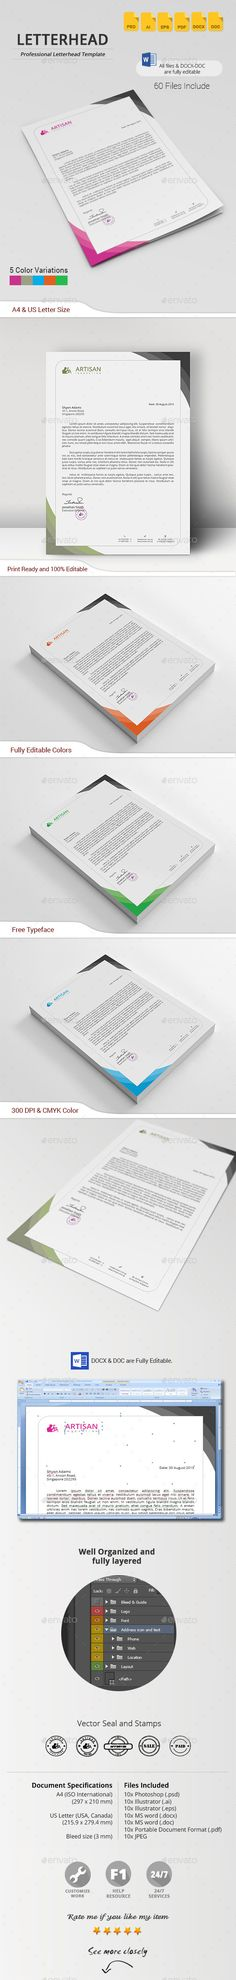 Creative Lawyer Letterhead #4 Lawyer, Stationery printing and